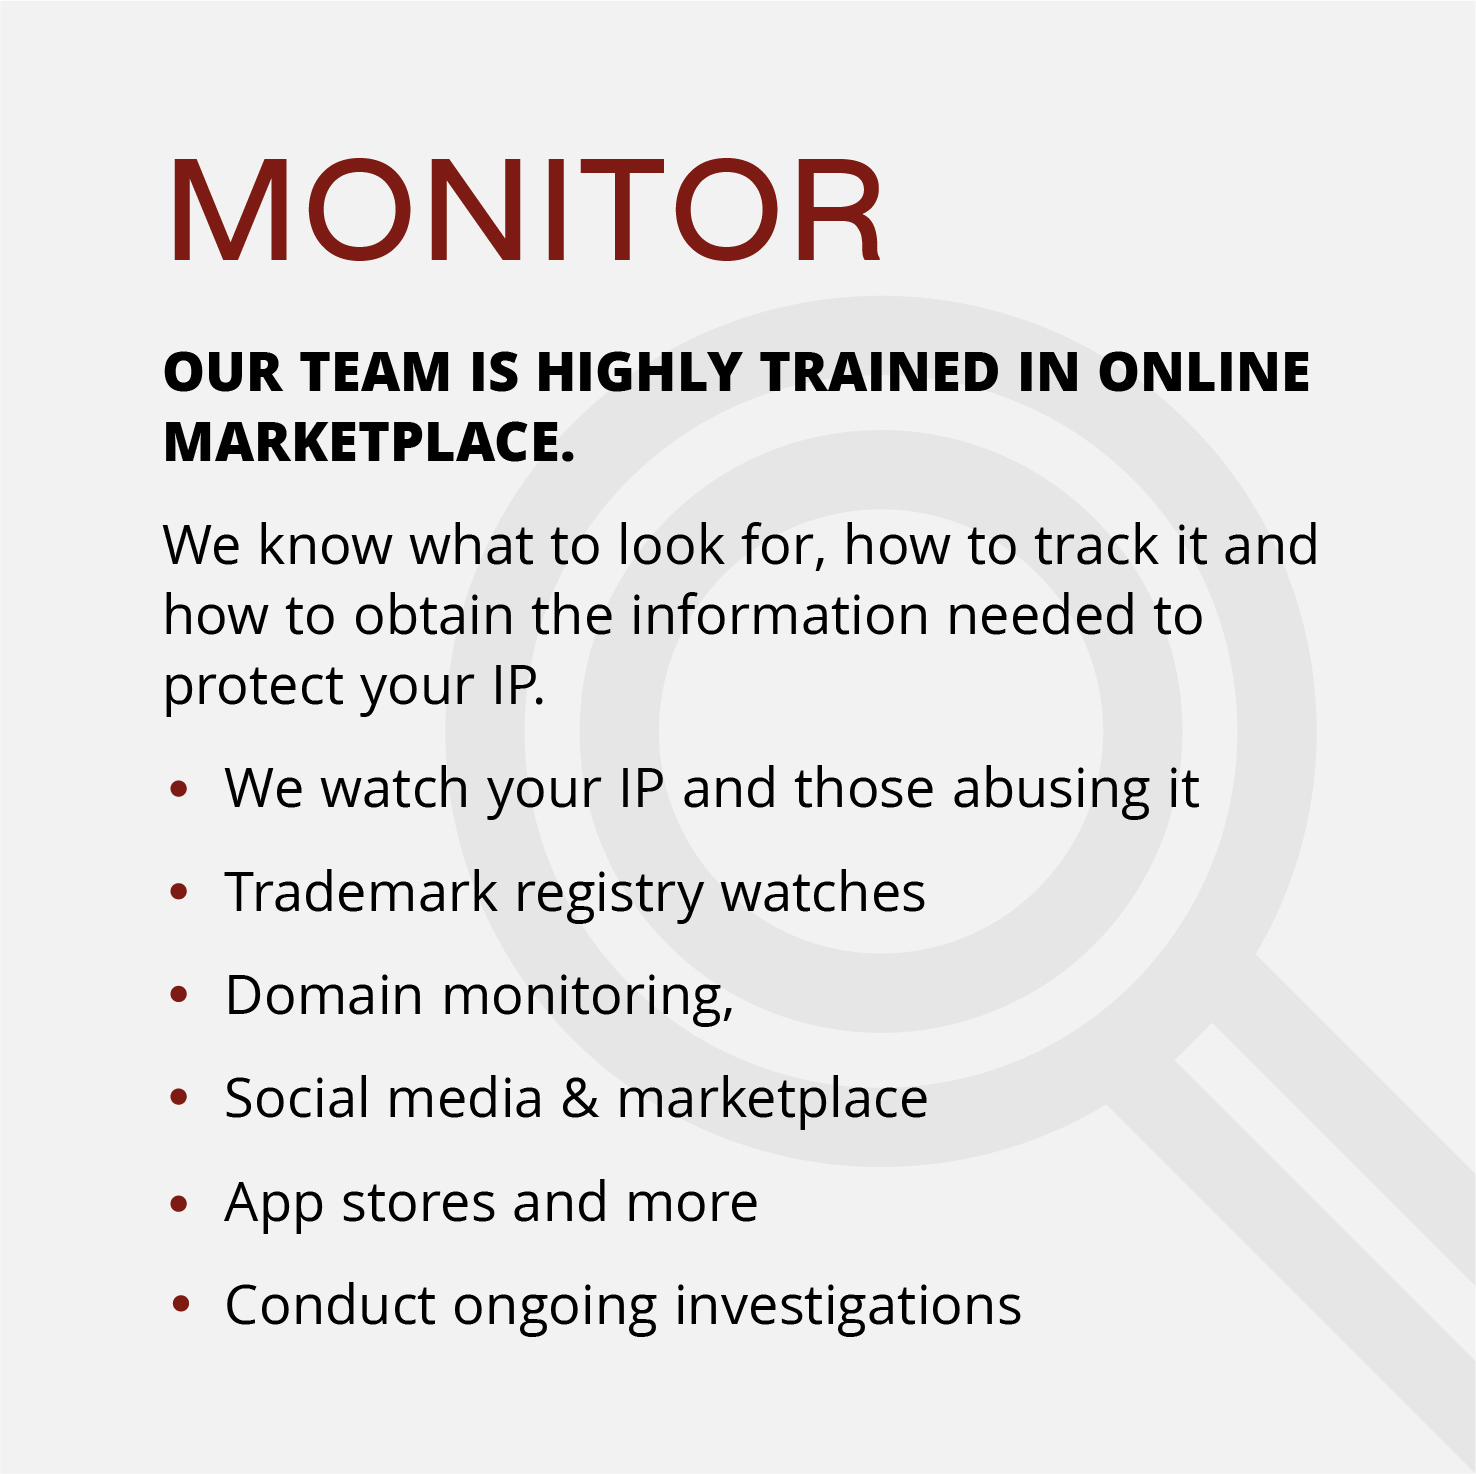 MONITOROUR TEAM IS HIGHLY TRAINED IN ONLINE MARKETPLACE. We know what to look for, how to track it and how to obtain the information needed to protect your IP. ●We watch your IP and those abusing it  ○Trademark registry watches ○Domain monitoring,  ○Social media & marketplace ○App stores and more ●Conduct ongoing investigations